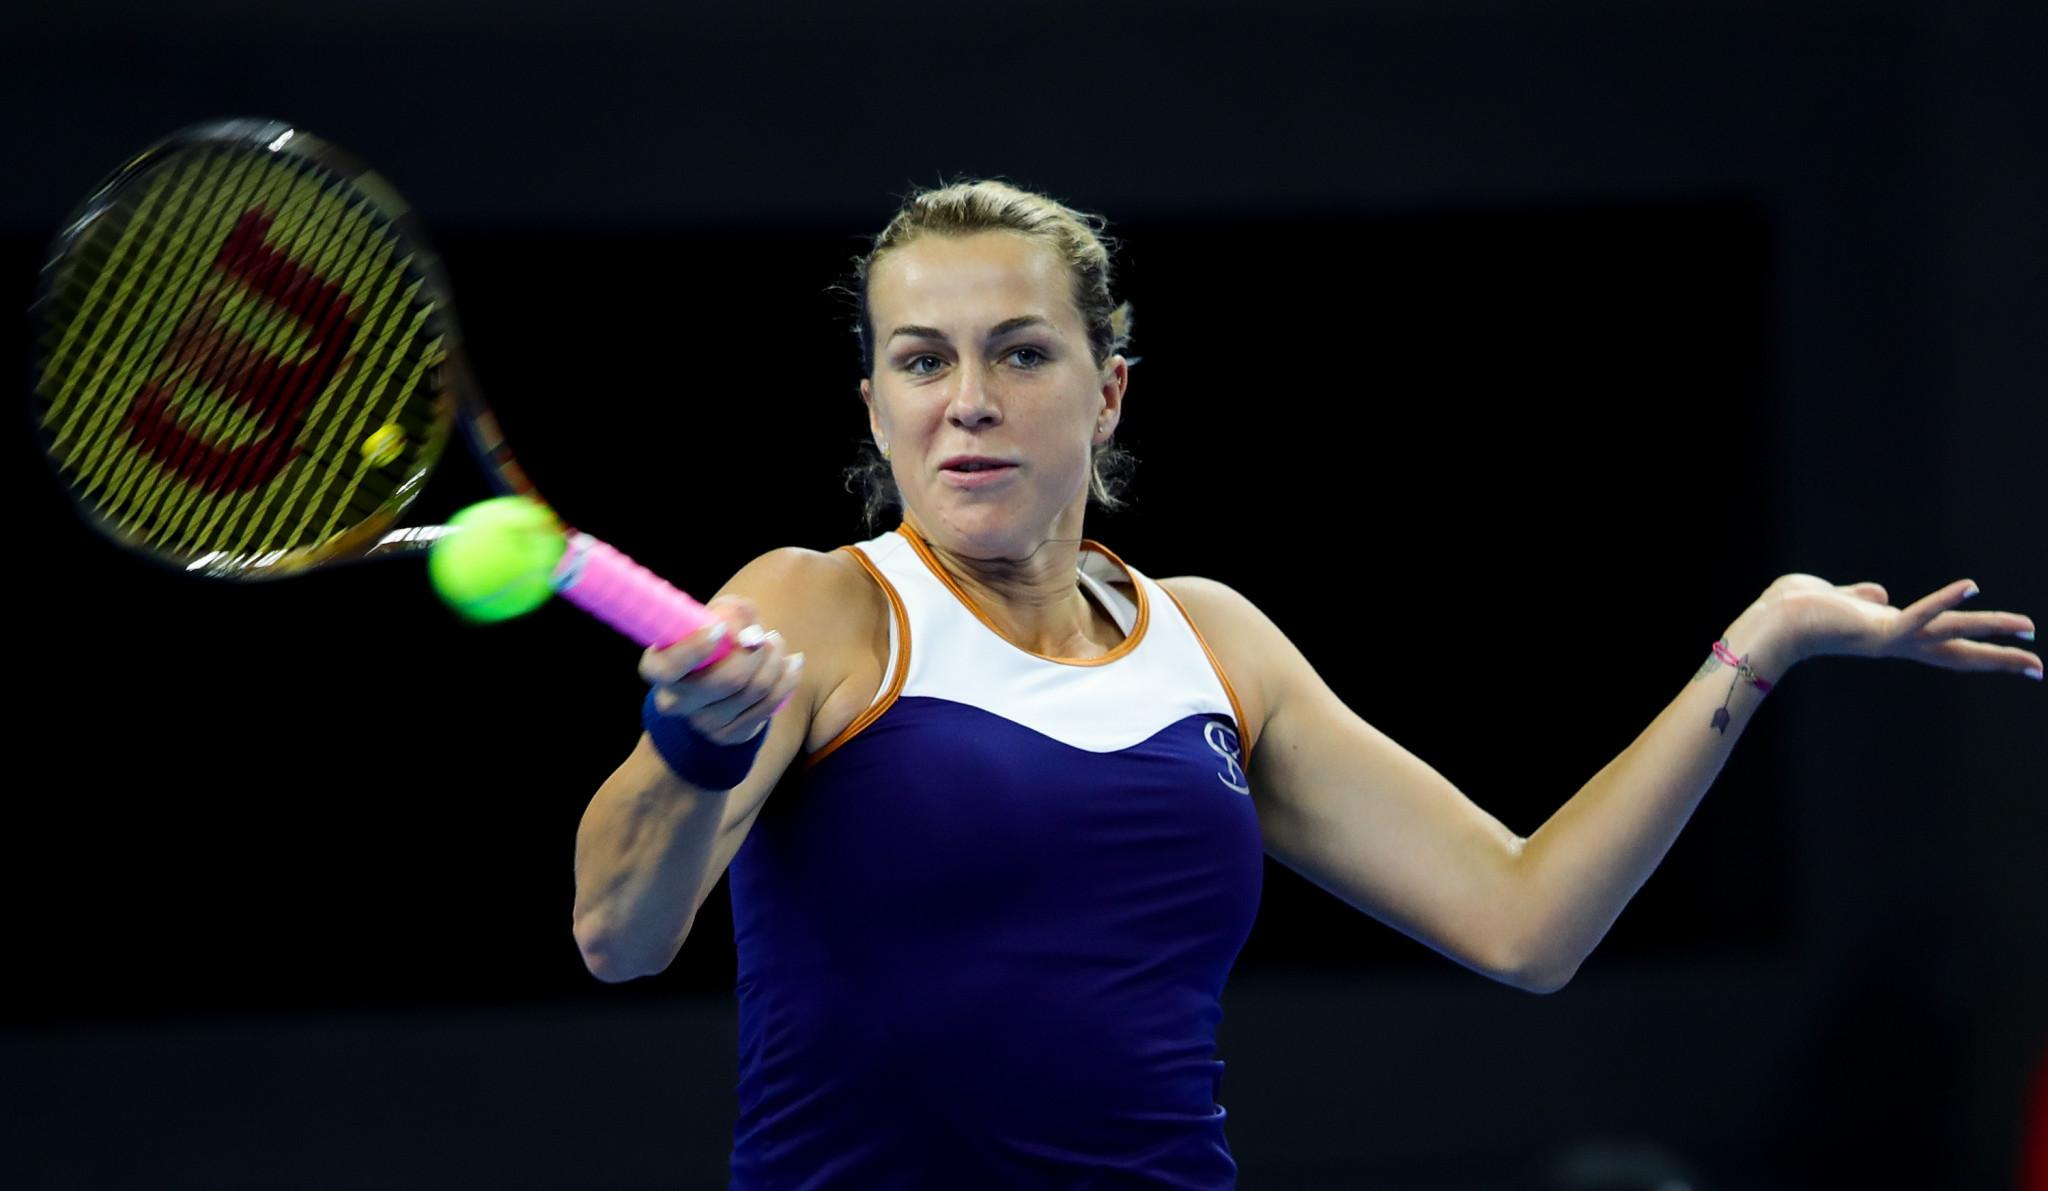 Pavlyuchenkova wins on home soil as WTA Kremlin Cup opens in Moscow